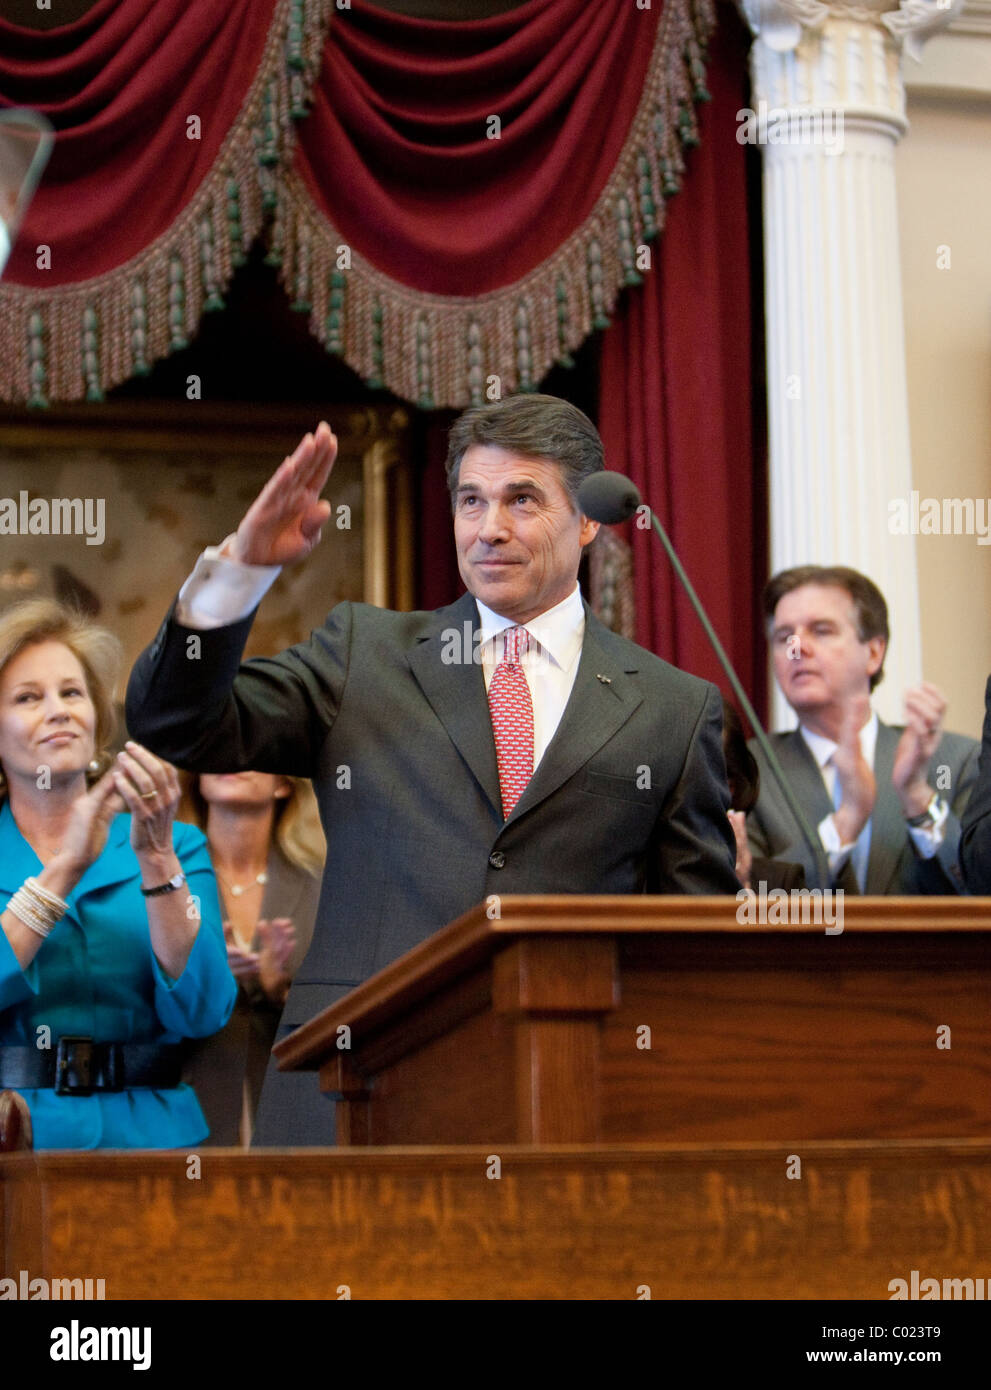 Texas Gov. Rick Perry acknowledges the audience before giving his bi-annual State of the State speech in the Capitol. - Stock Image